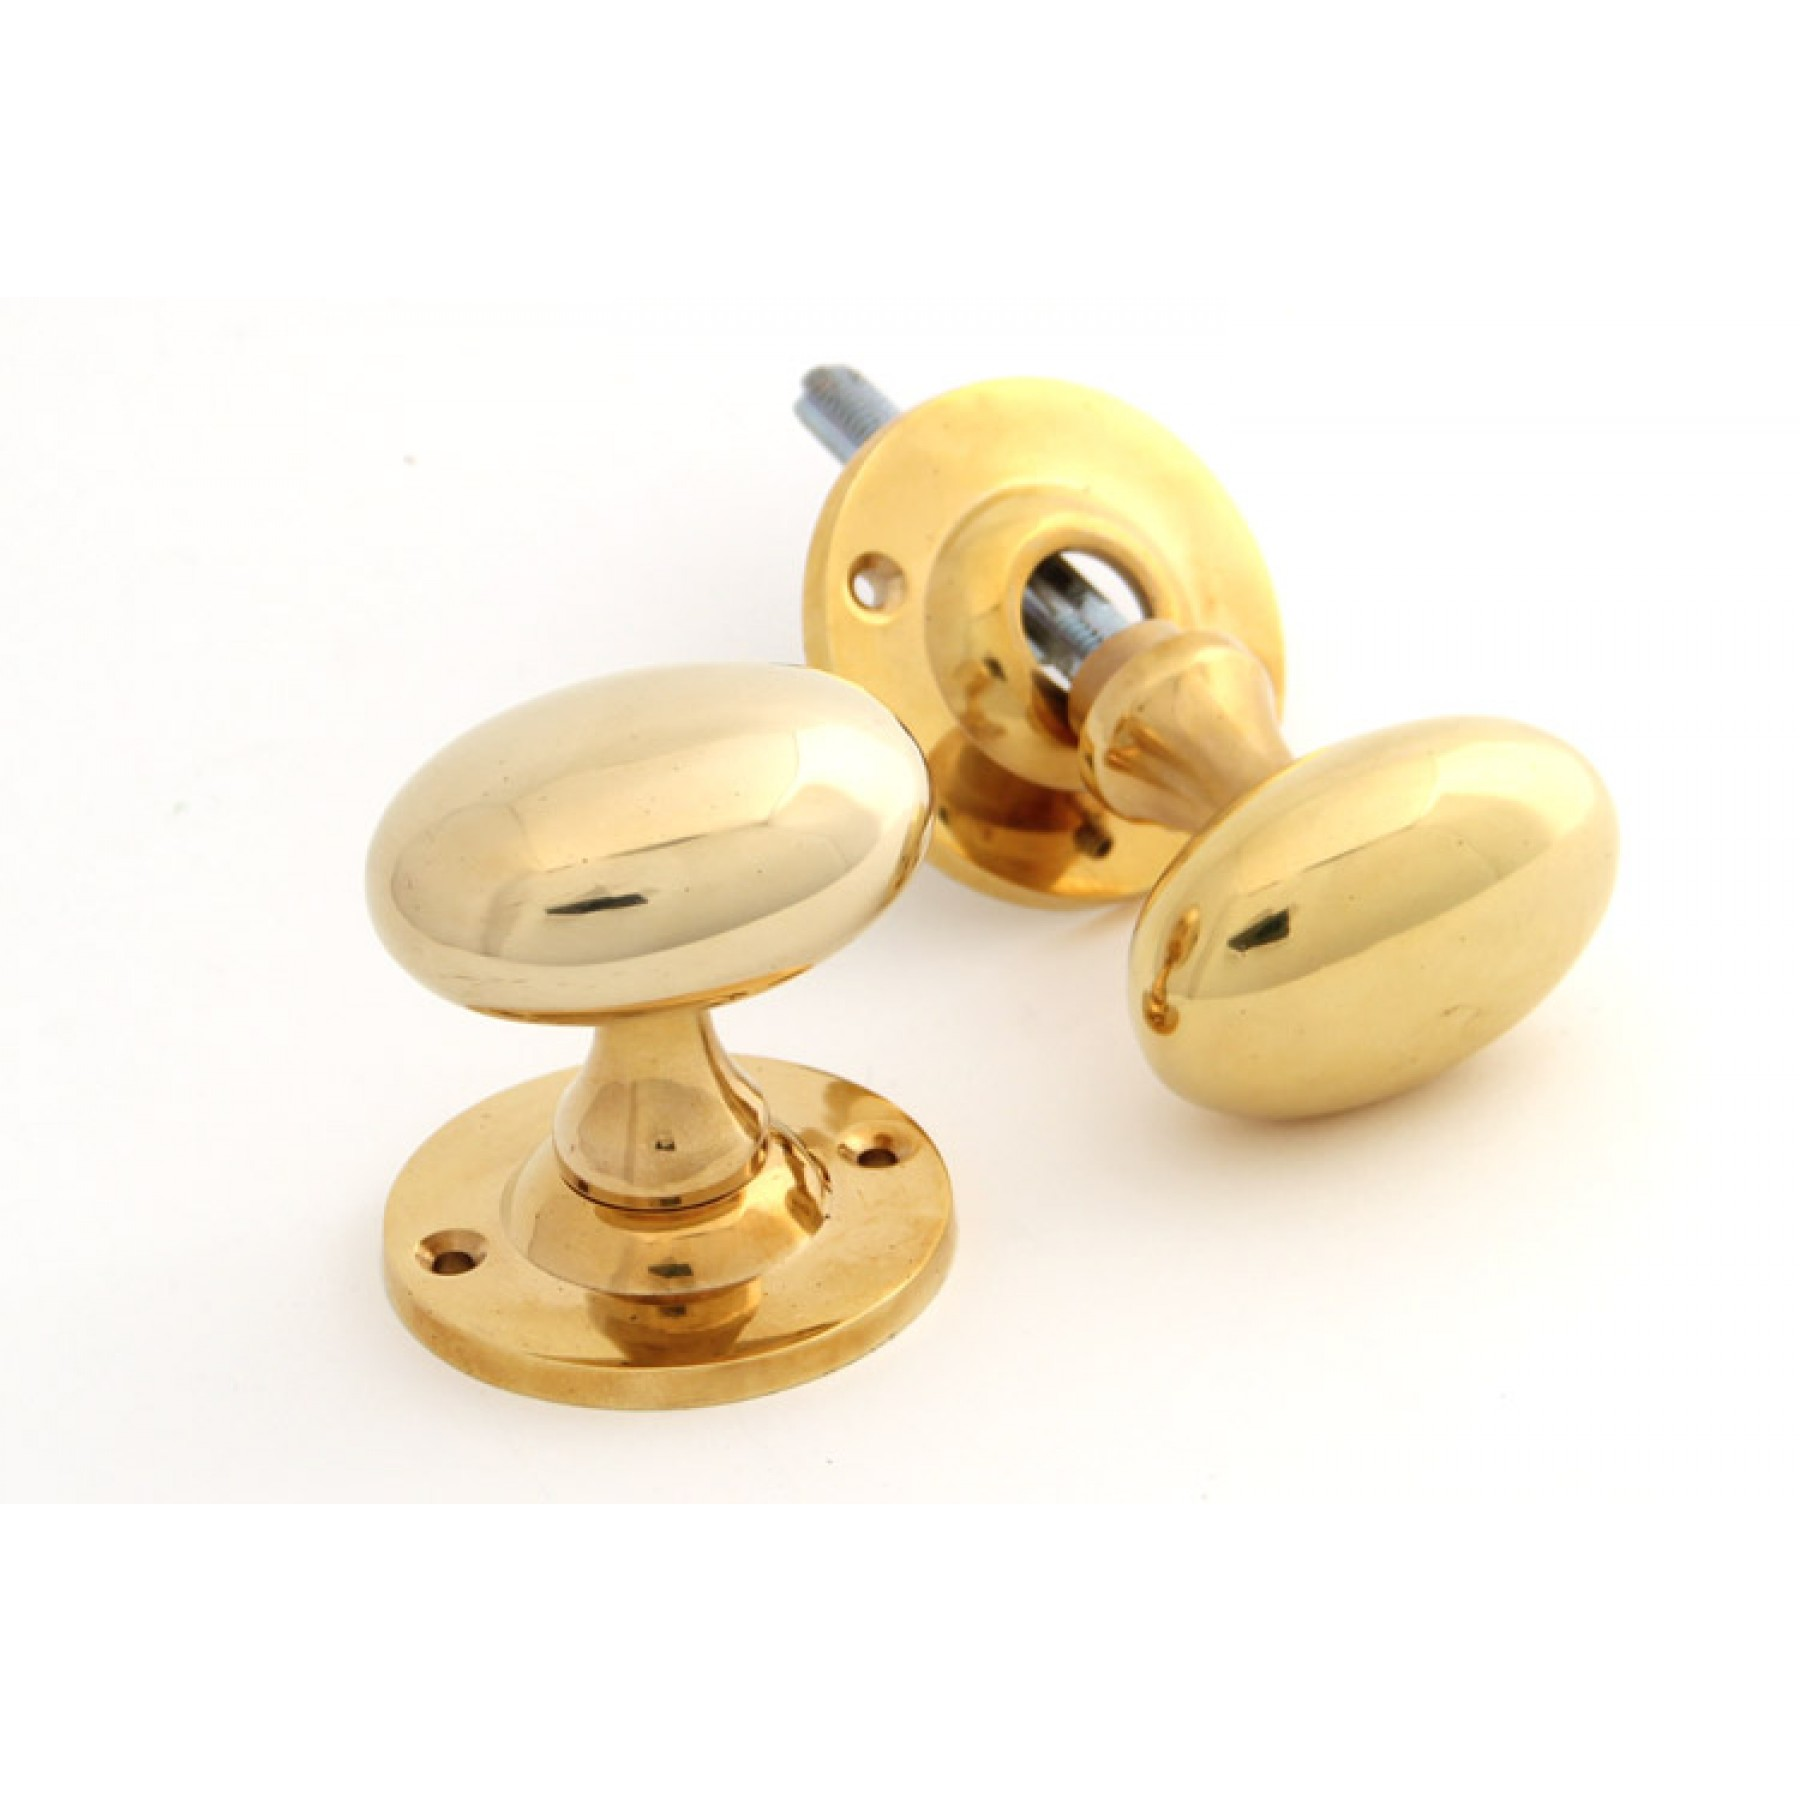 oval brass door knobs photo - 18